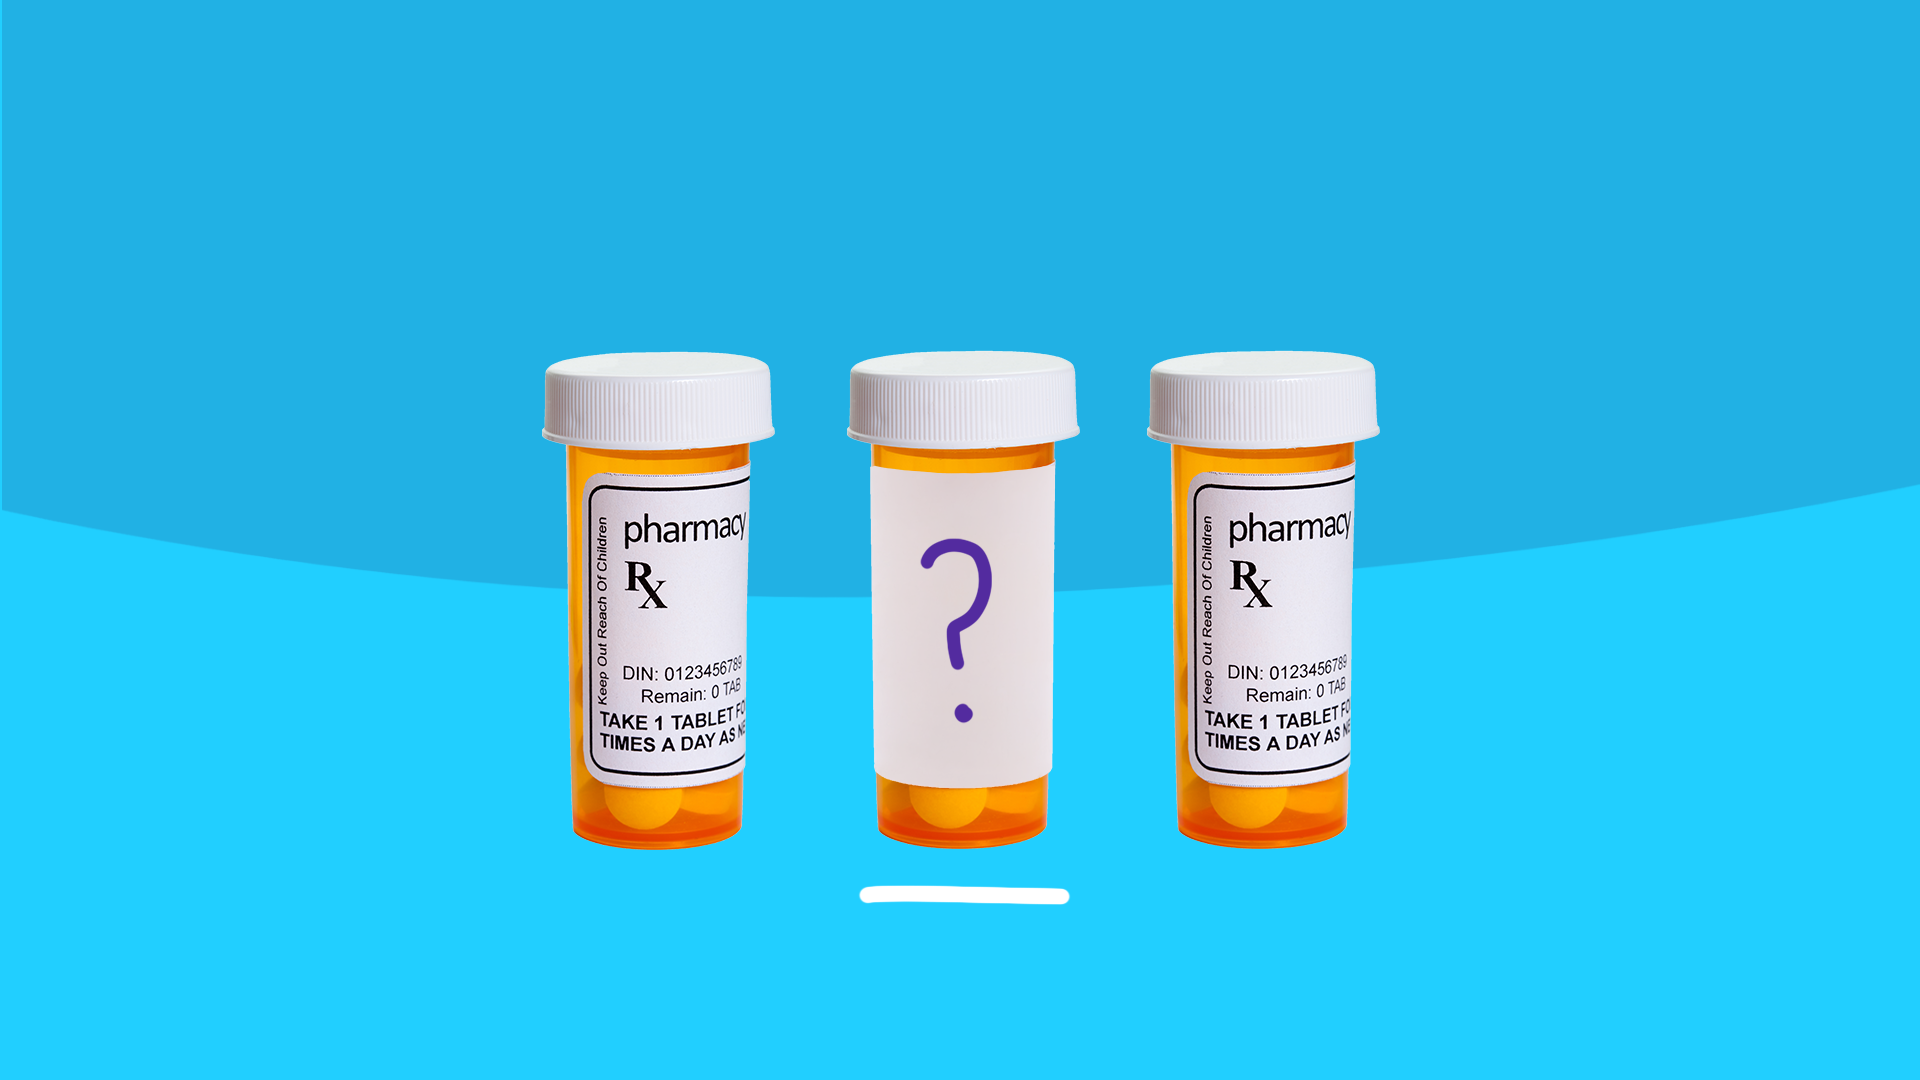 Off-label prescription drugs: What you need to know